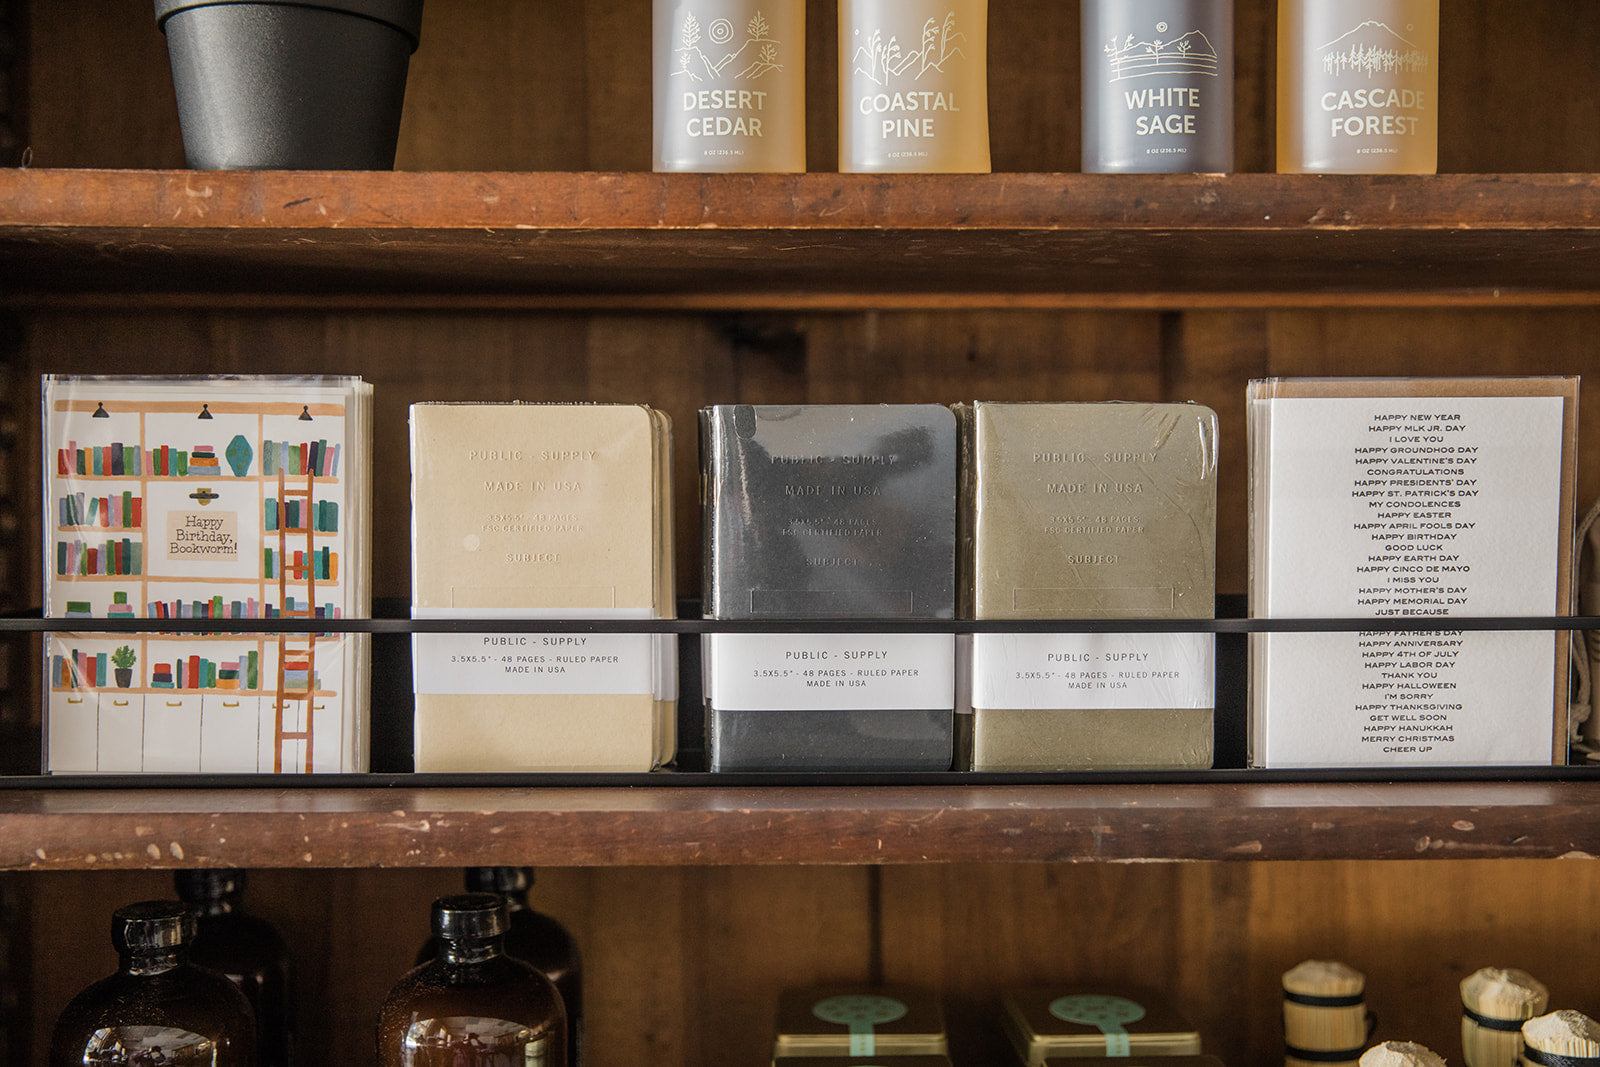 Paper products on shelf